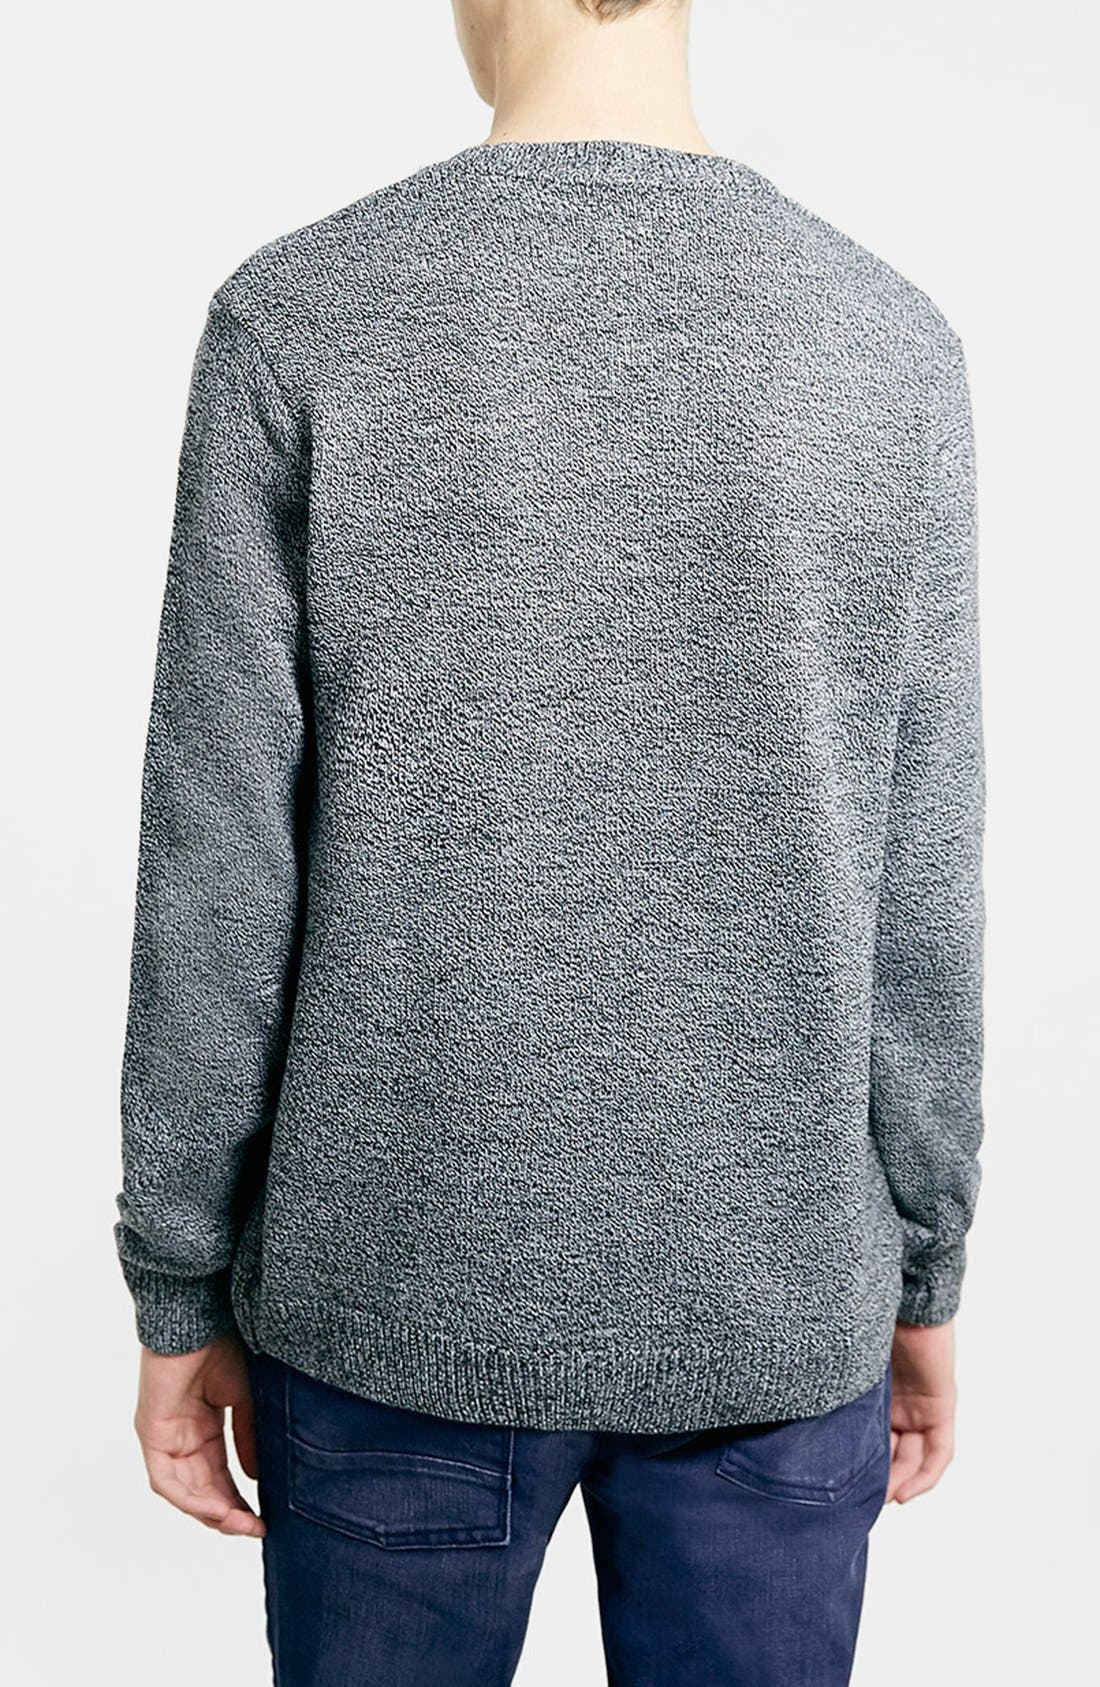 TOPMAN,                             Merry Christmas Crewneck Sweater,                             Alternate thumbnail 4, color,                             400